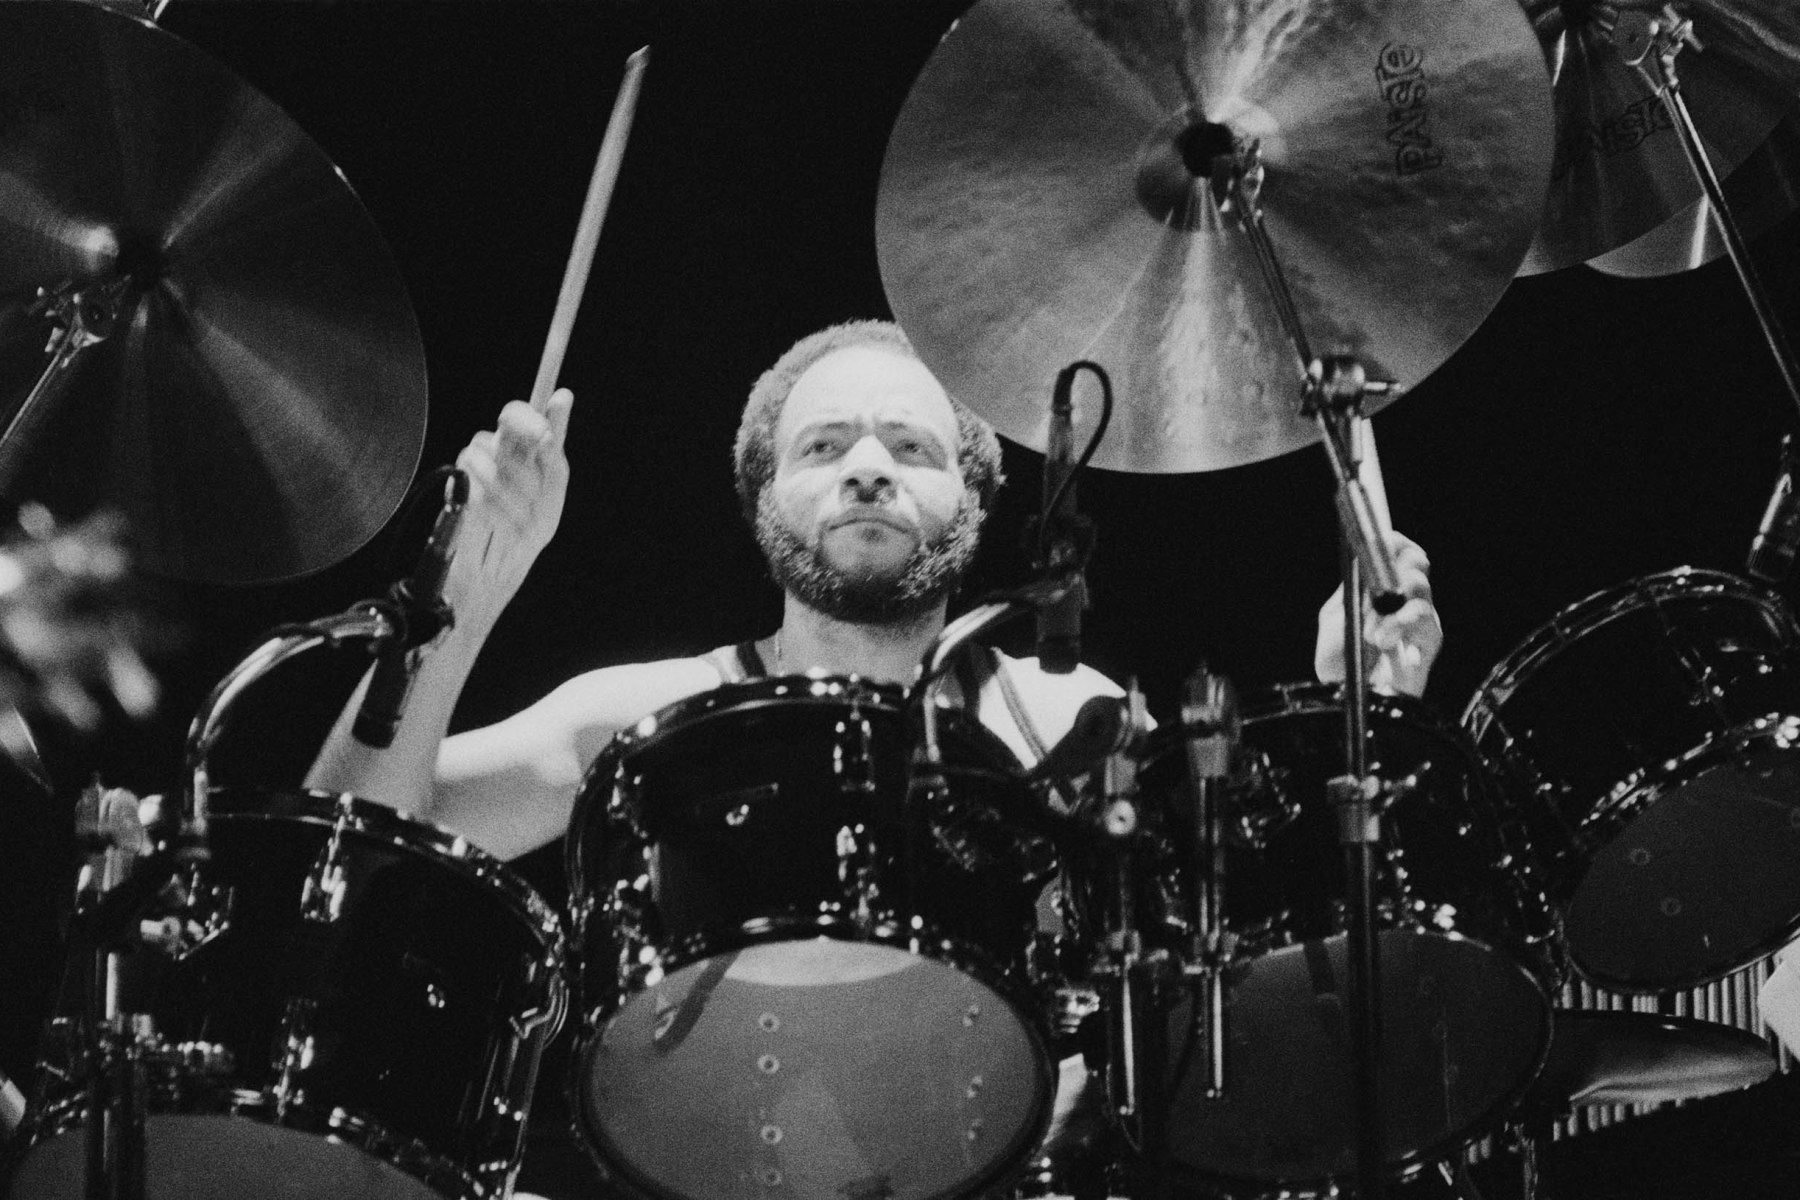 American drummer Chester Thompson performing with English progressive rock group Genesis, at the Broome County Veterans Memorial Arena, Binghamton, New York, USA, 28th March 1978. (Photo by Michael Putland/Getty Images)